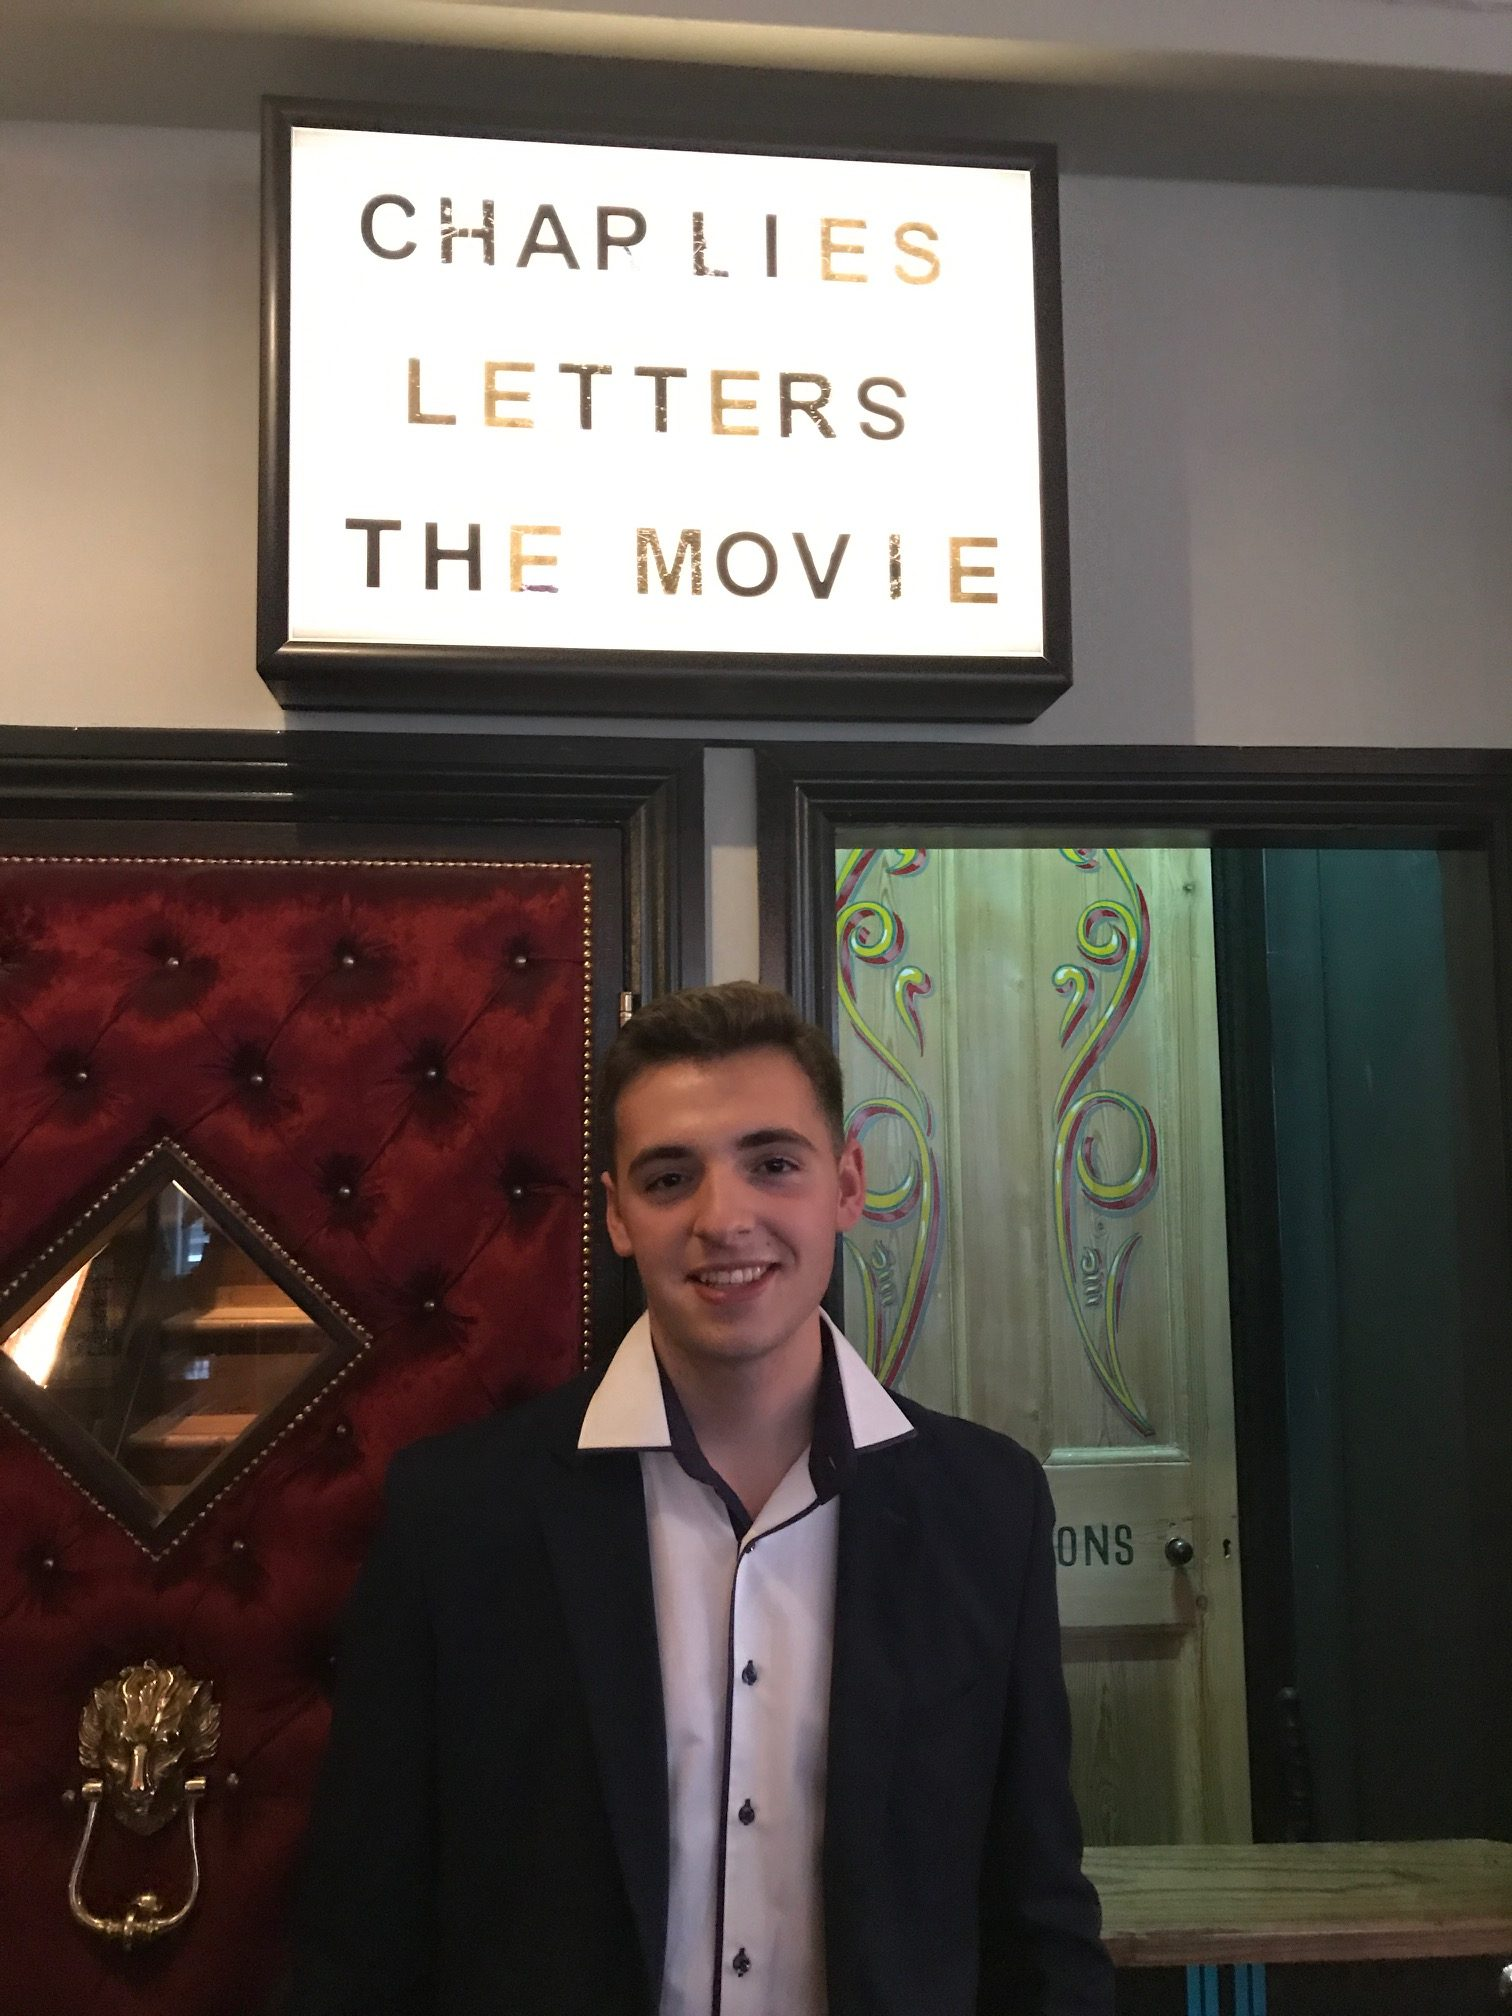 Charlie\u0027s Letters: Opening Night Success | Relsah Productions